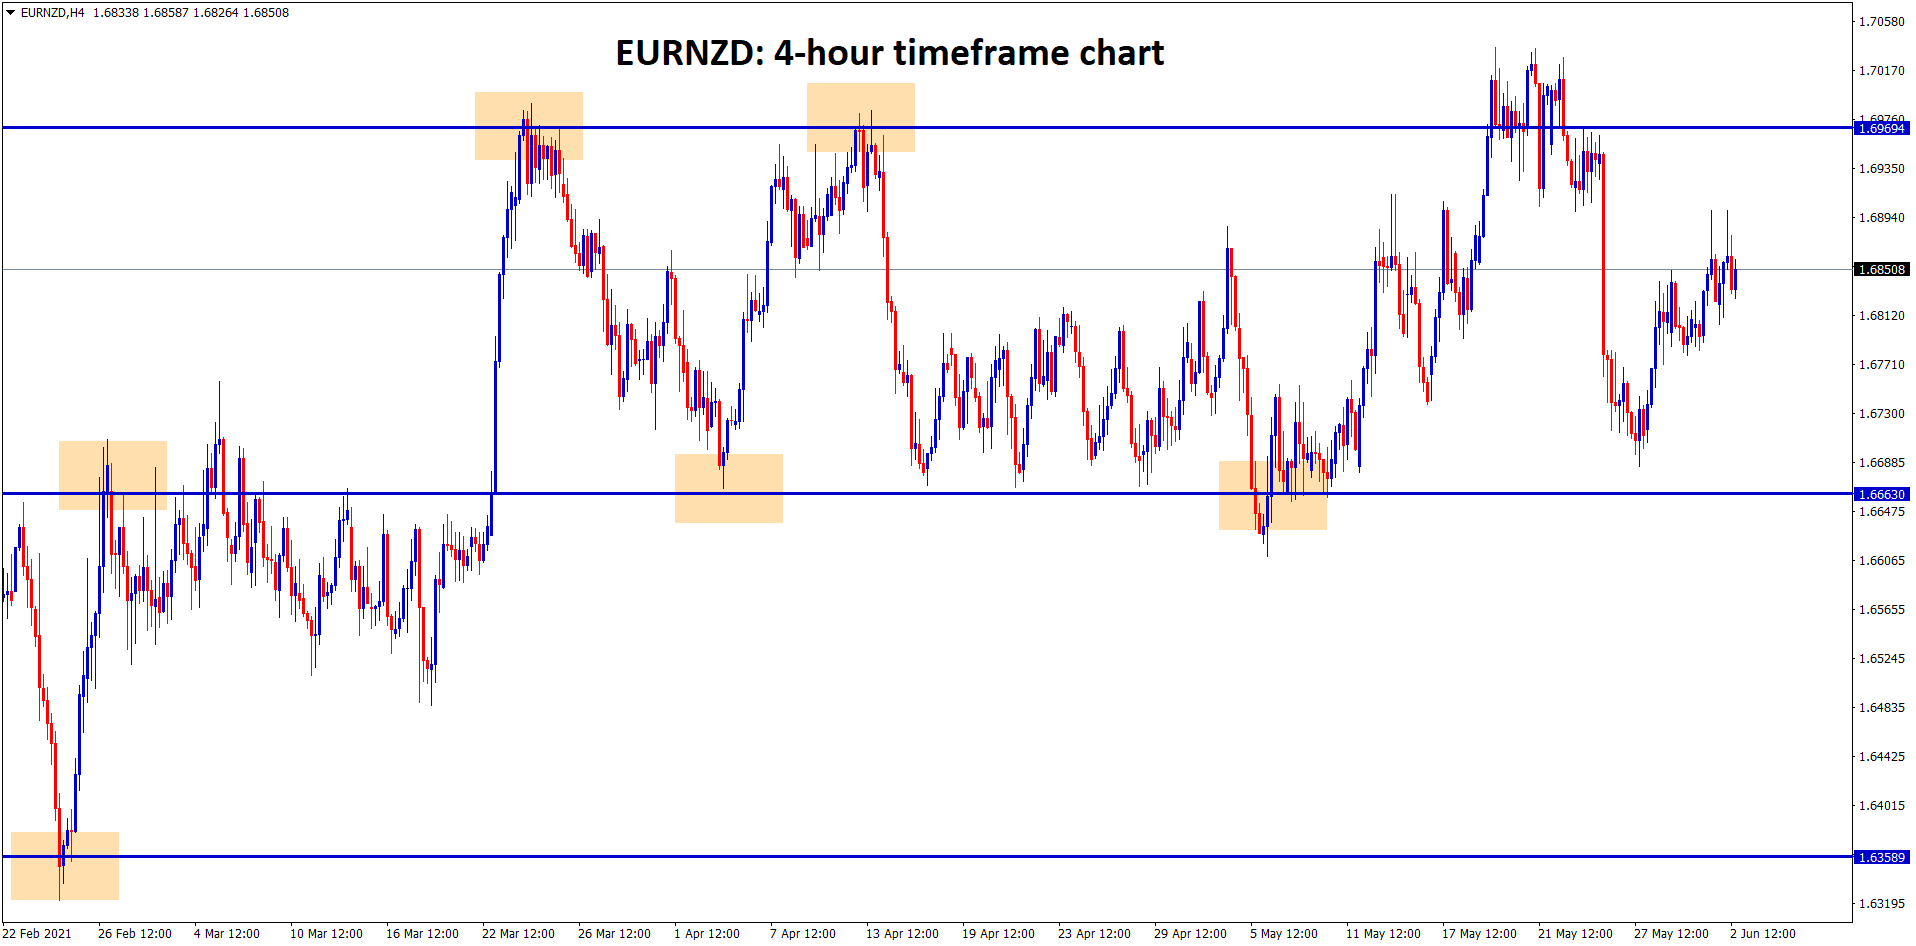 EURNZD is moving up and down between the resistance ands support level ranges previous broken resistance turned into new support